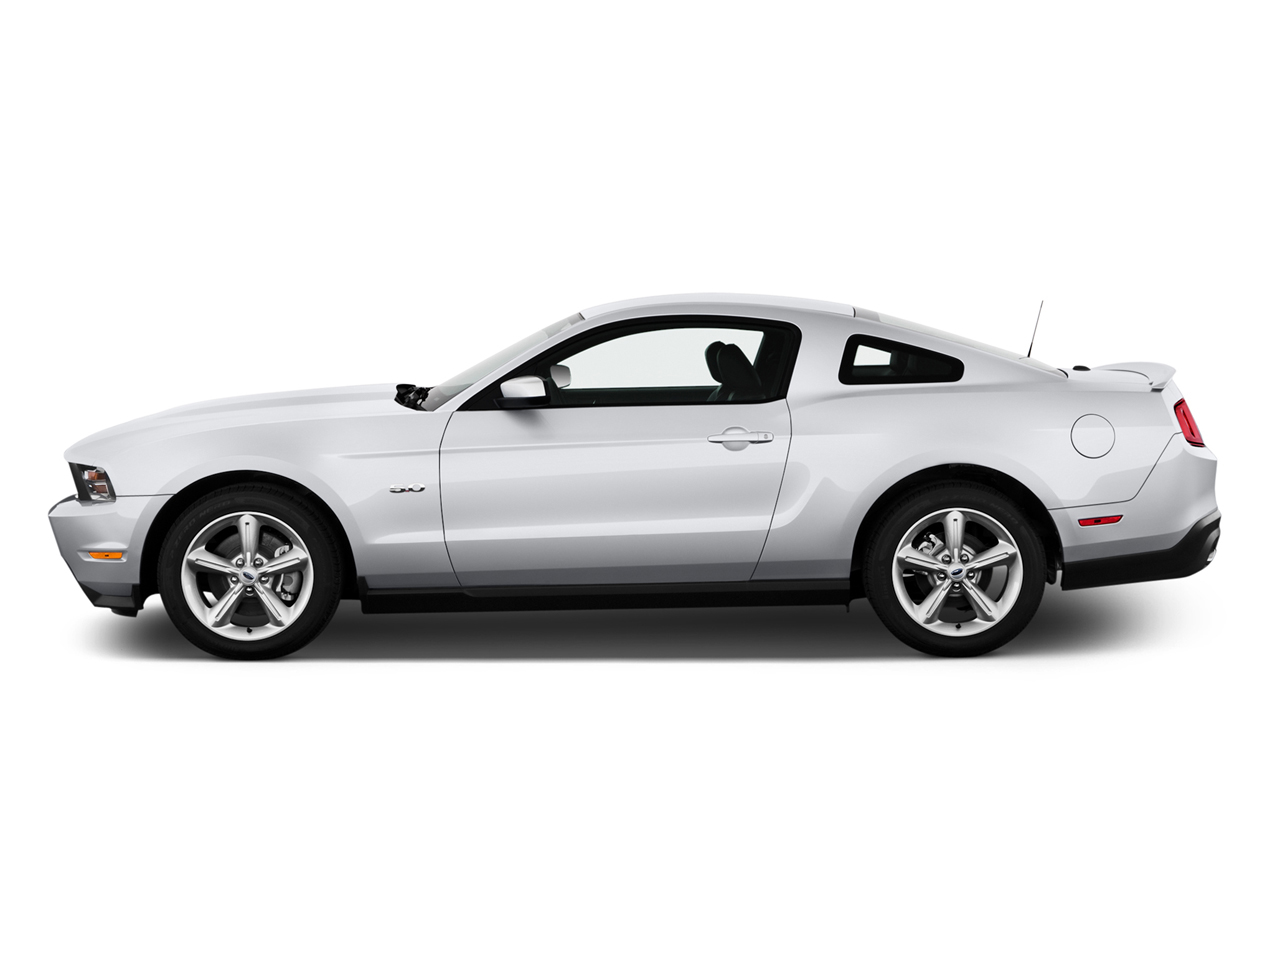 2012 ford mustang review and news motorauthority. Black Bedroom Furniture Sets. Home Design Ideas